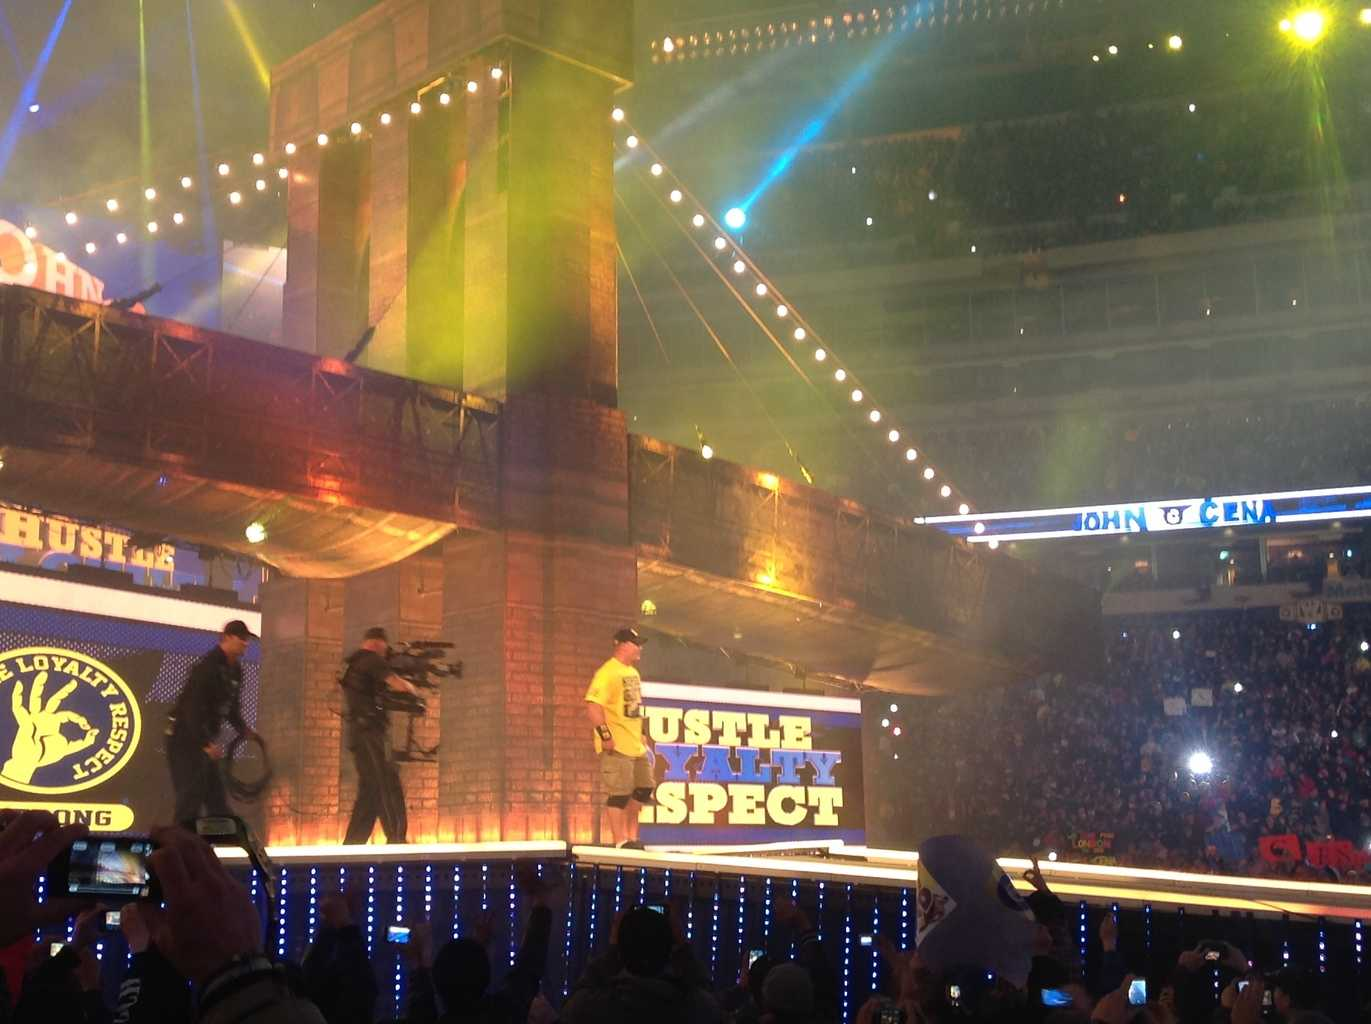 The discreet entrance of John Cena in Wrestlemania 29 / Photo by Alex Ruiz - Superluchas